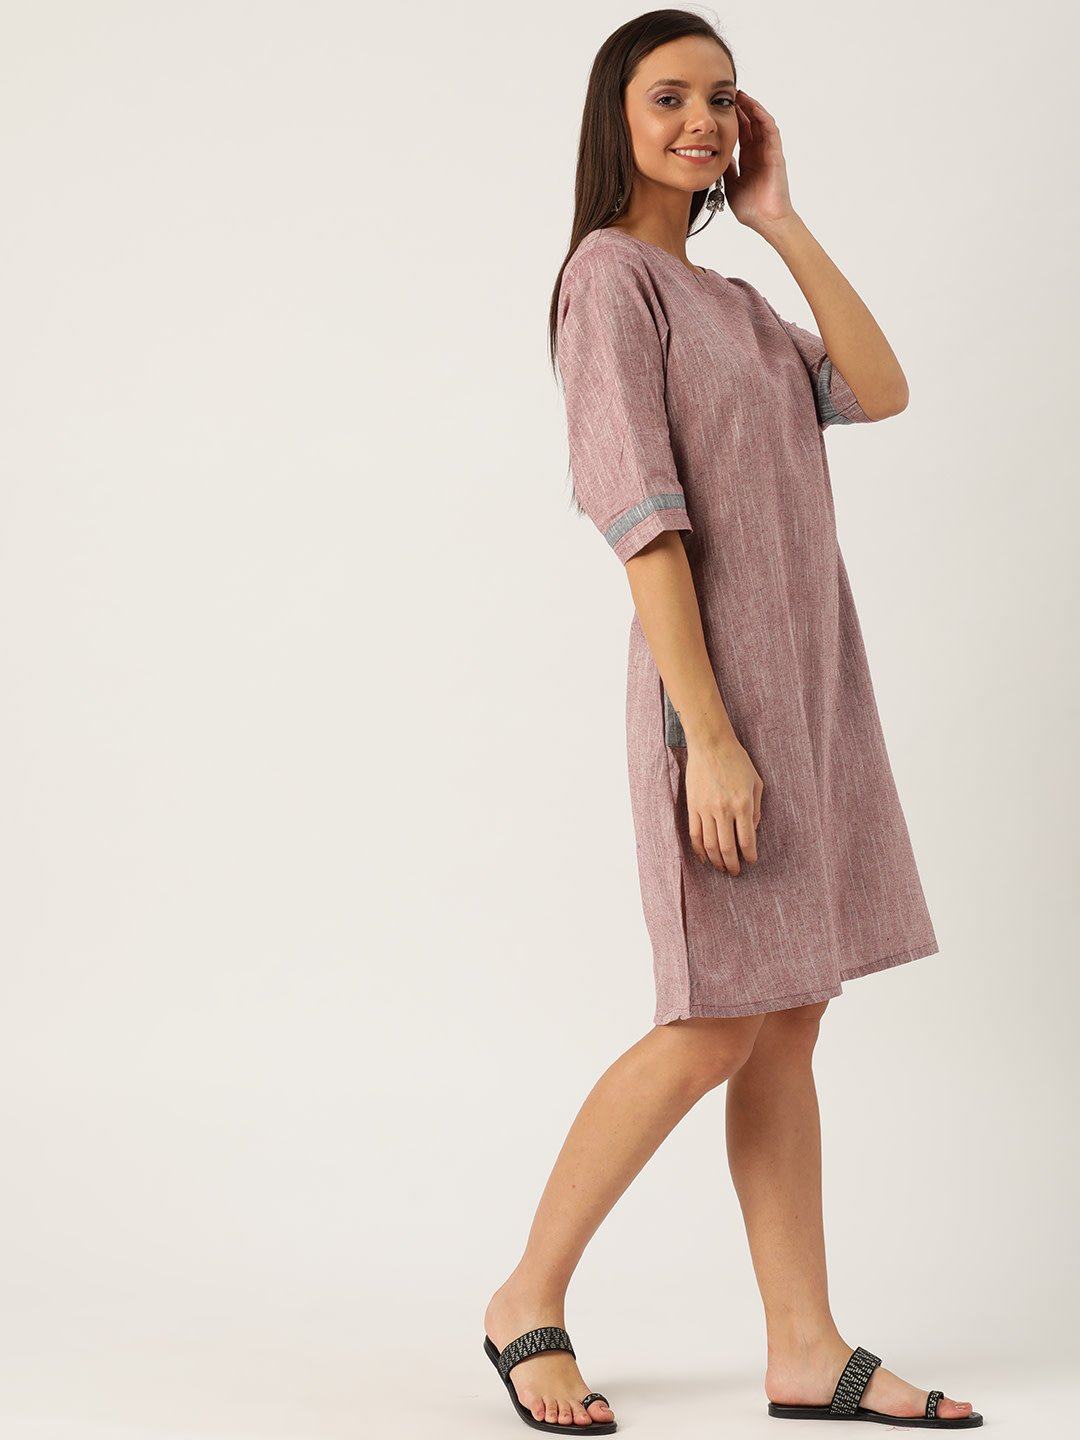 LIGHT BRANDY DRESS